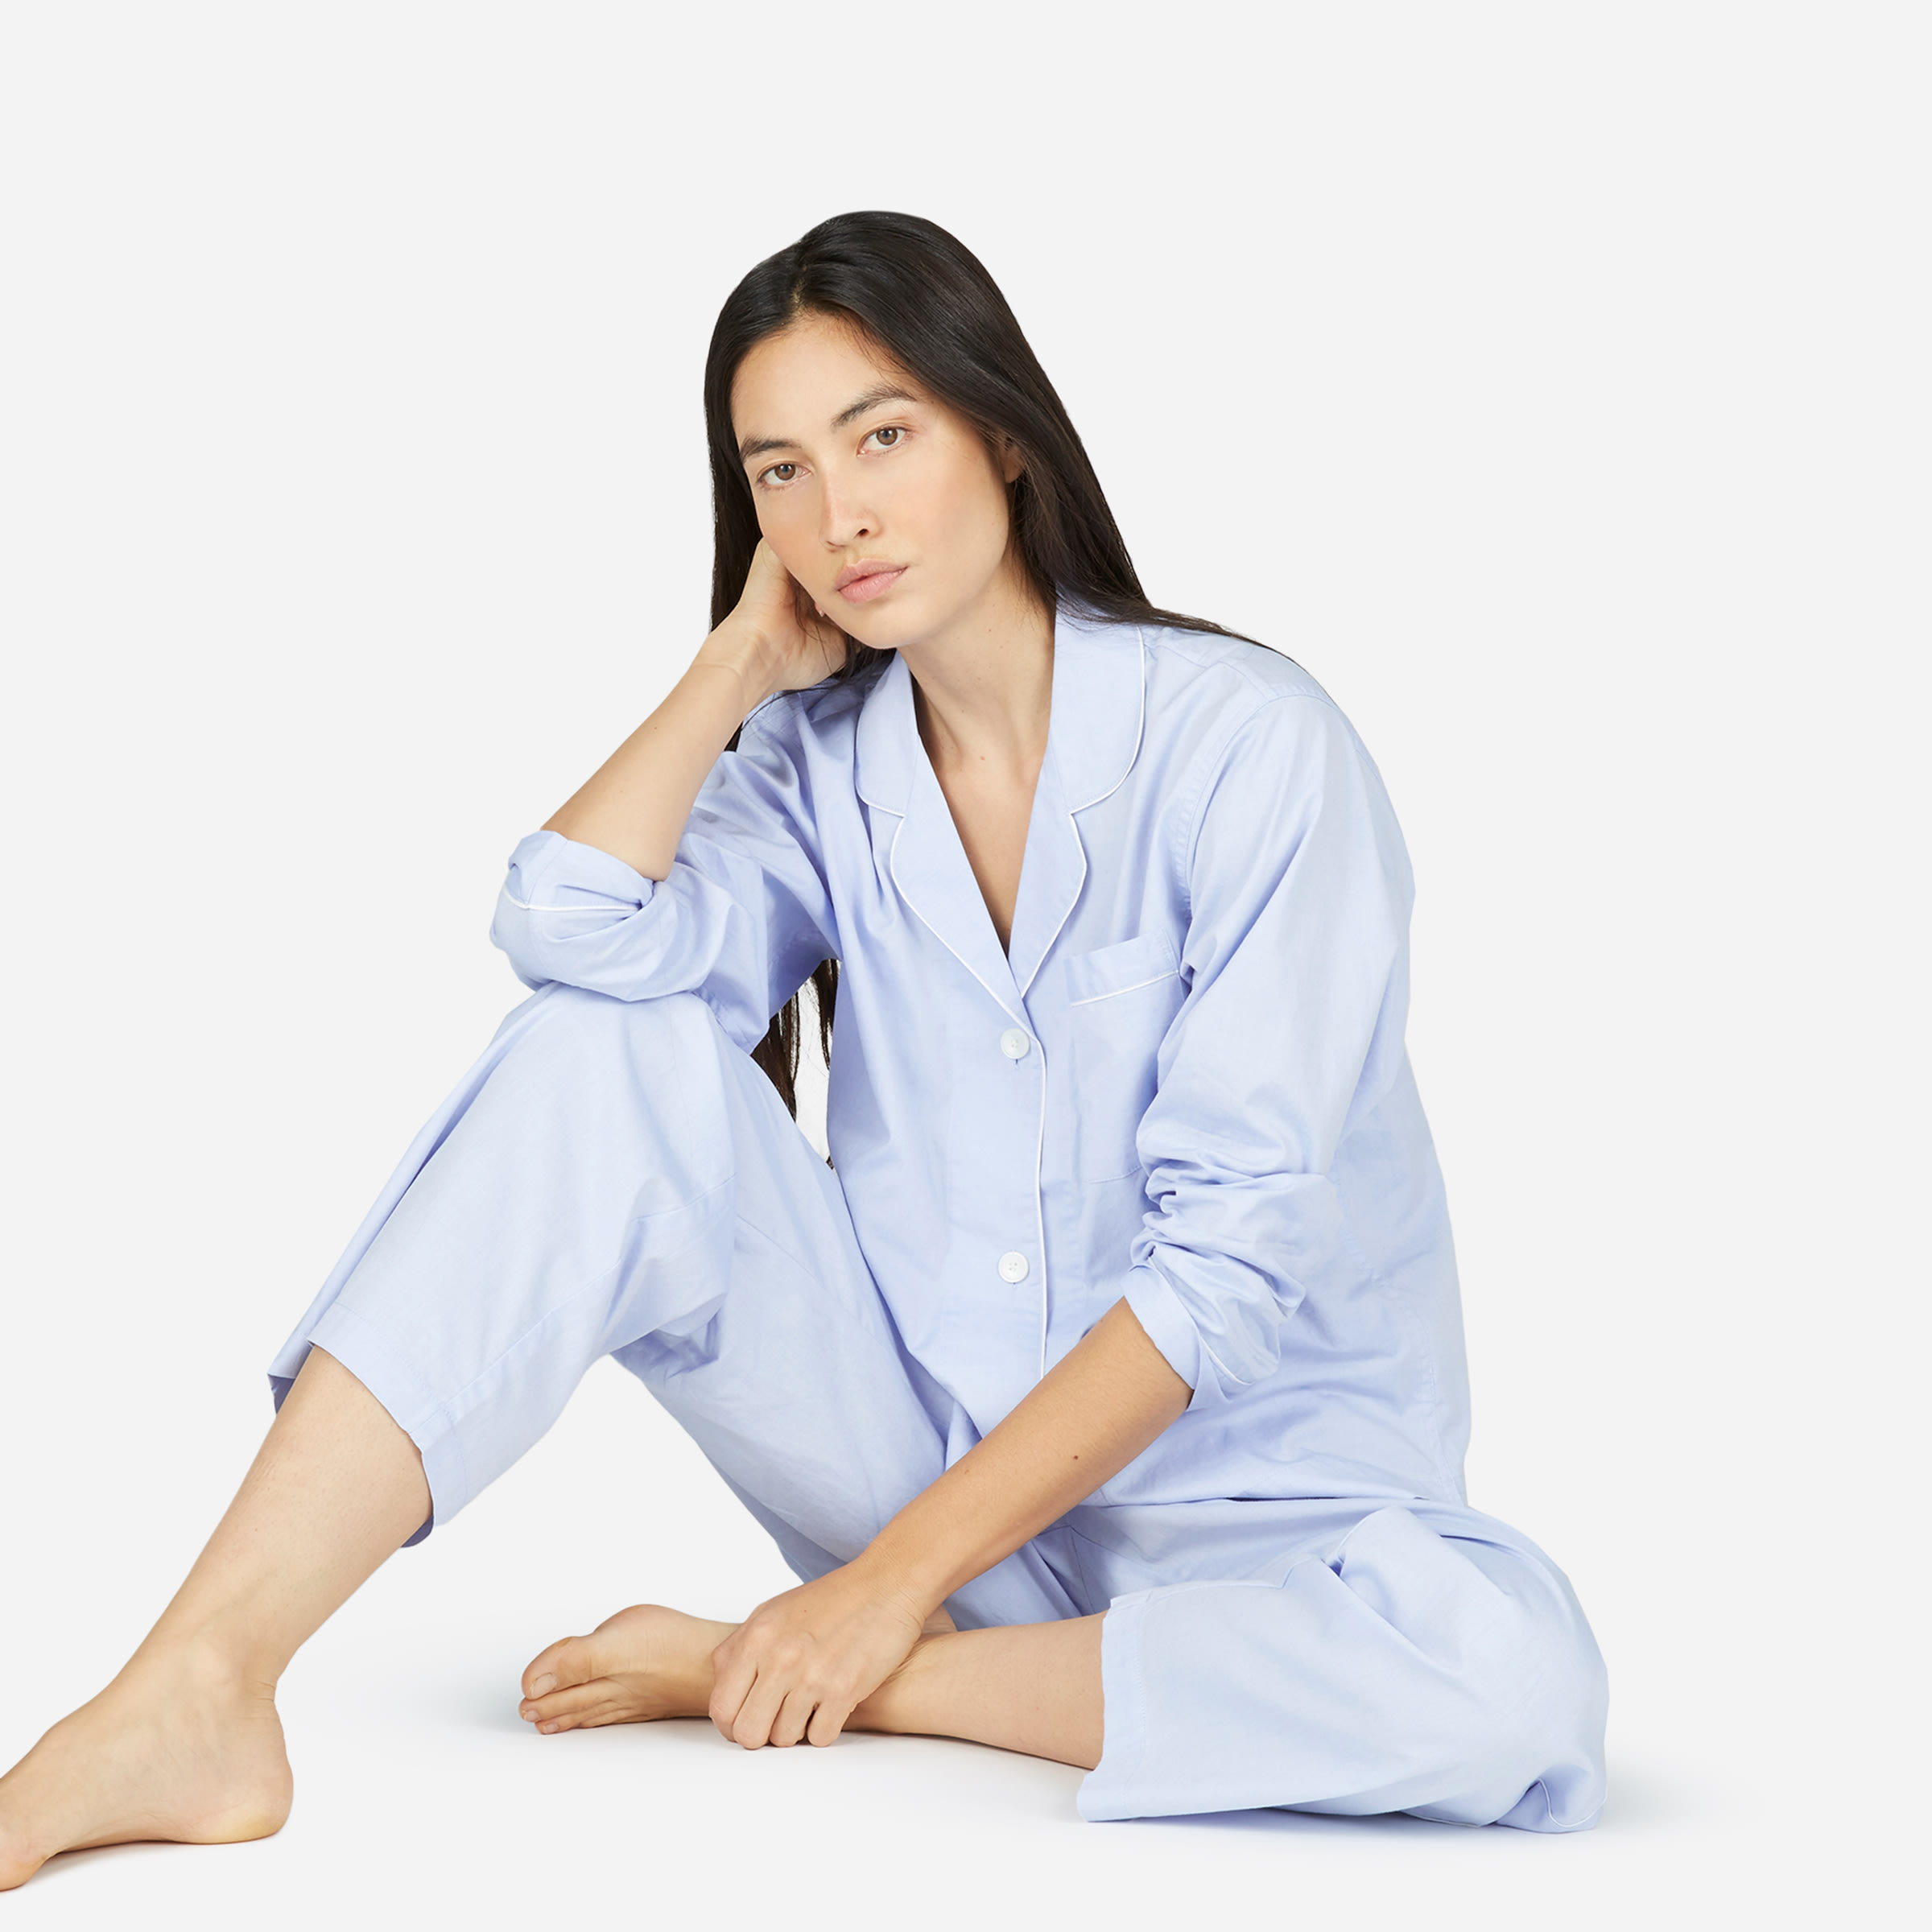 mount product women rated best pajamas womens pcr s set pink large gray in sets comforter cotton comfortable reviews pajama most helpful polka medley customer flannel noble